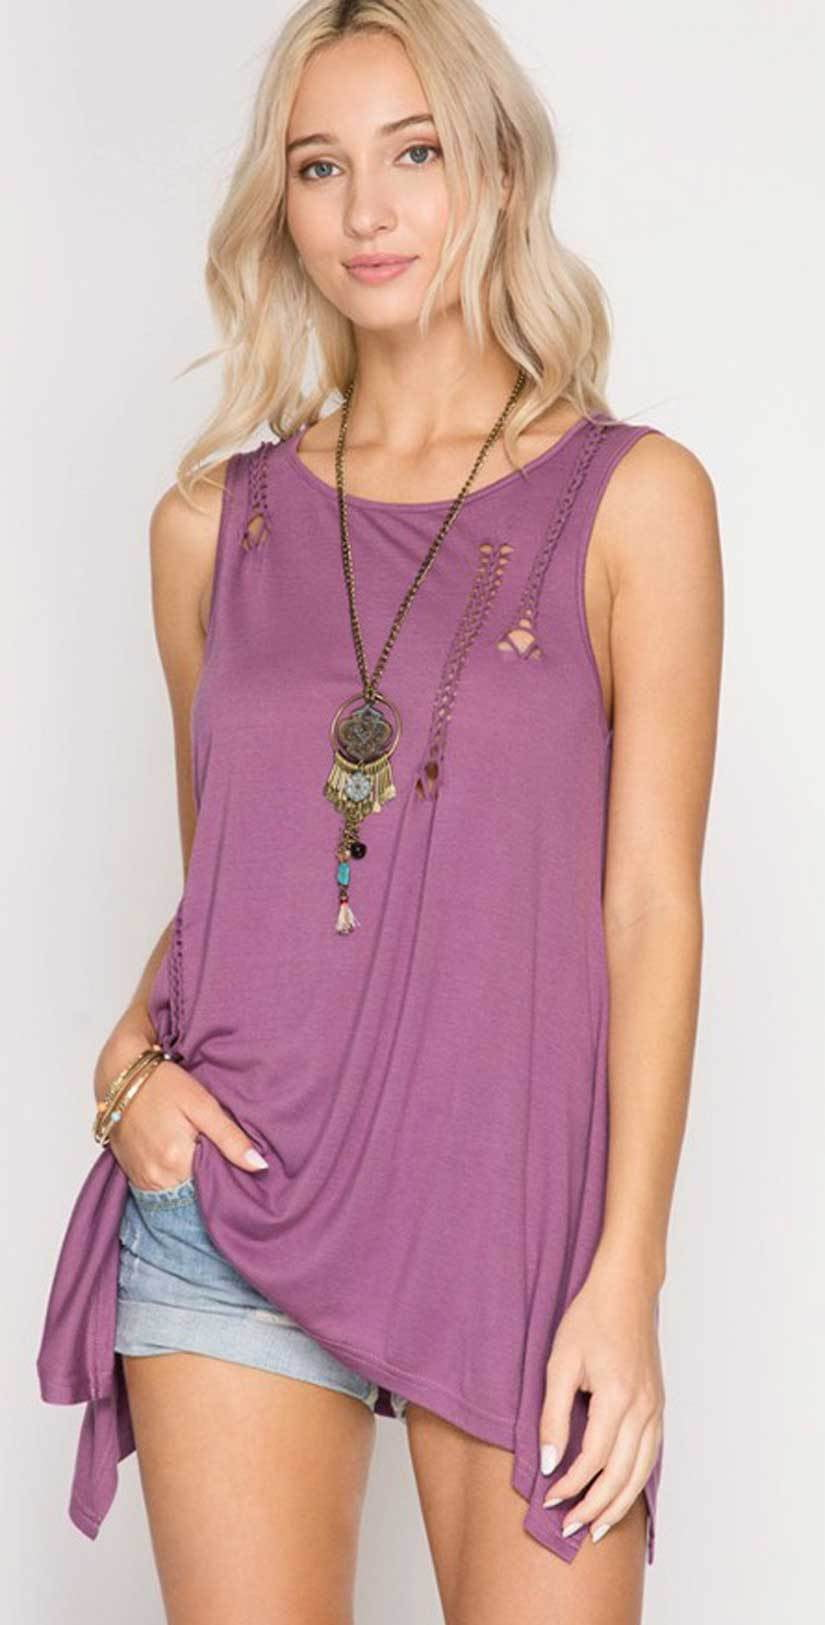 She + Sky Sleeveless Top with Braided Cutout Detail SL5262 front studio